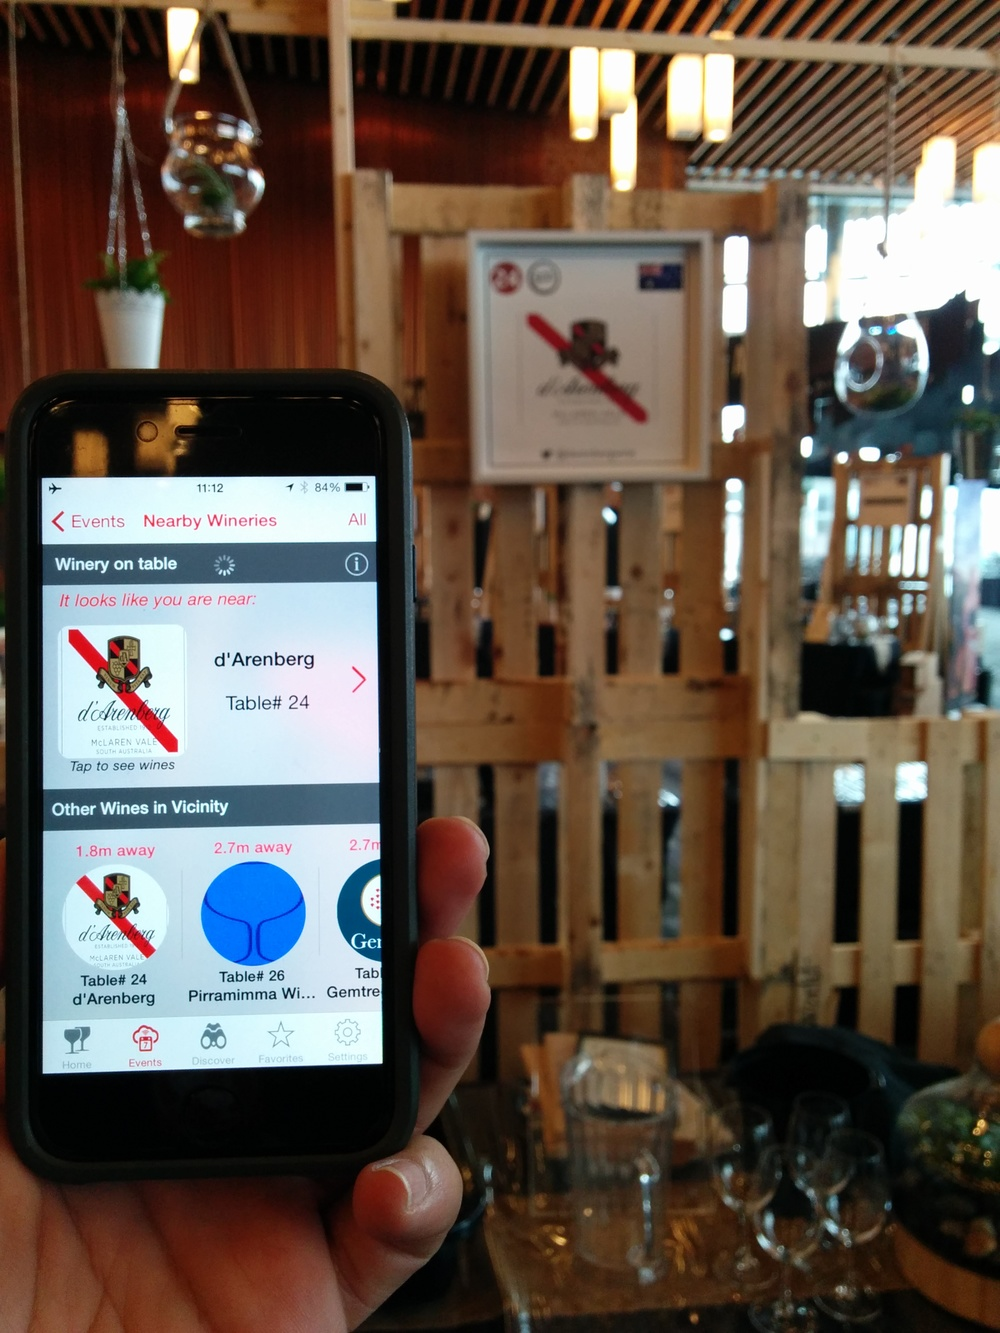 The use of beacon technology enables detection of winery in proximity